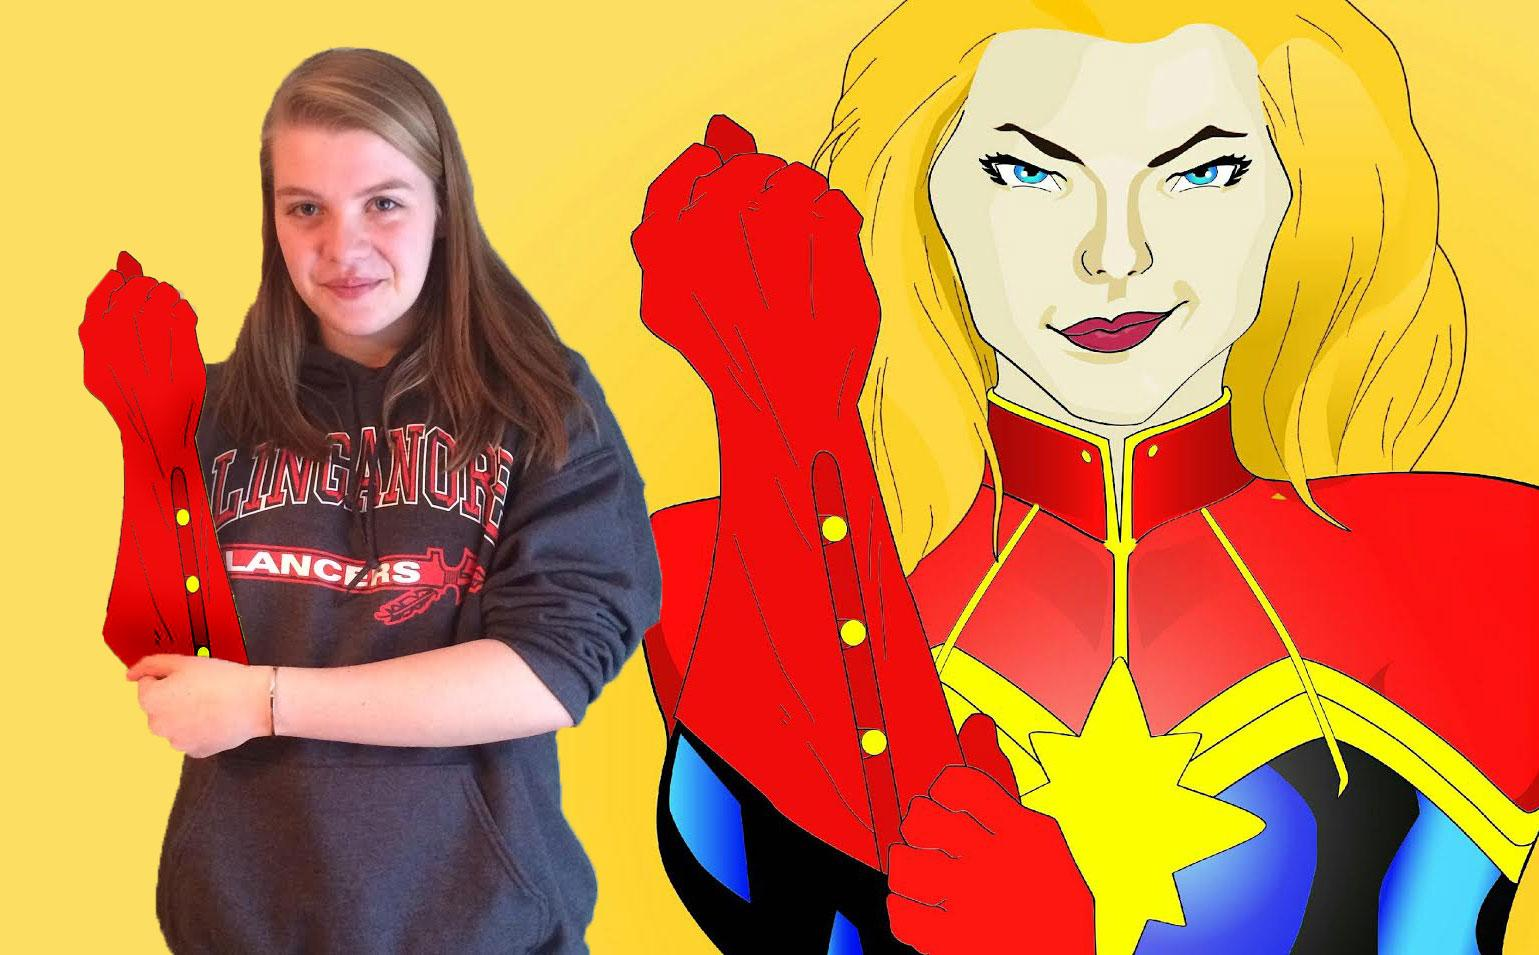 Sophie the Super-artist poses next to one of her superhero graphics.